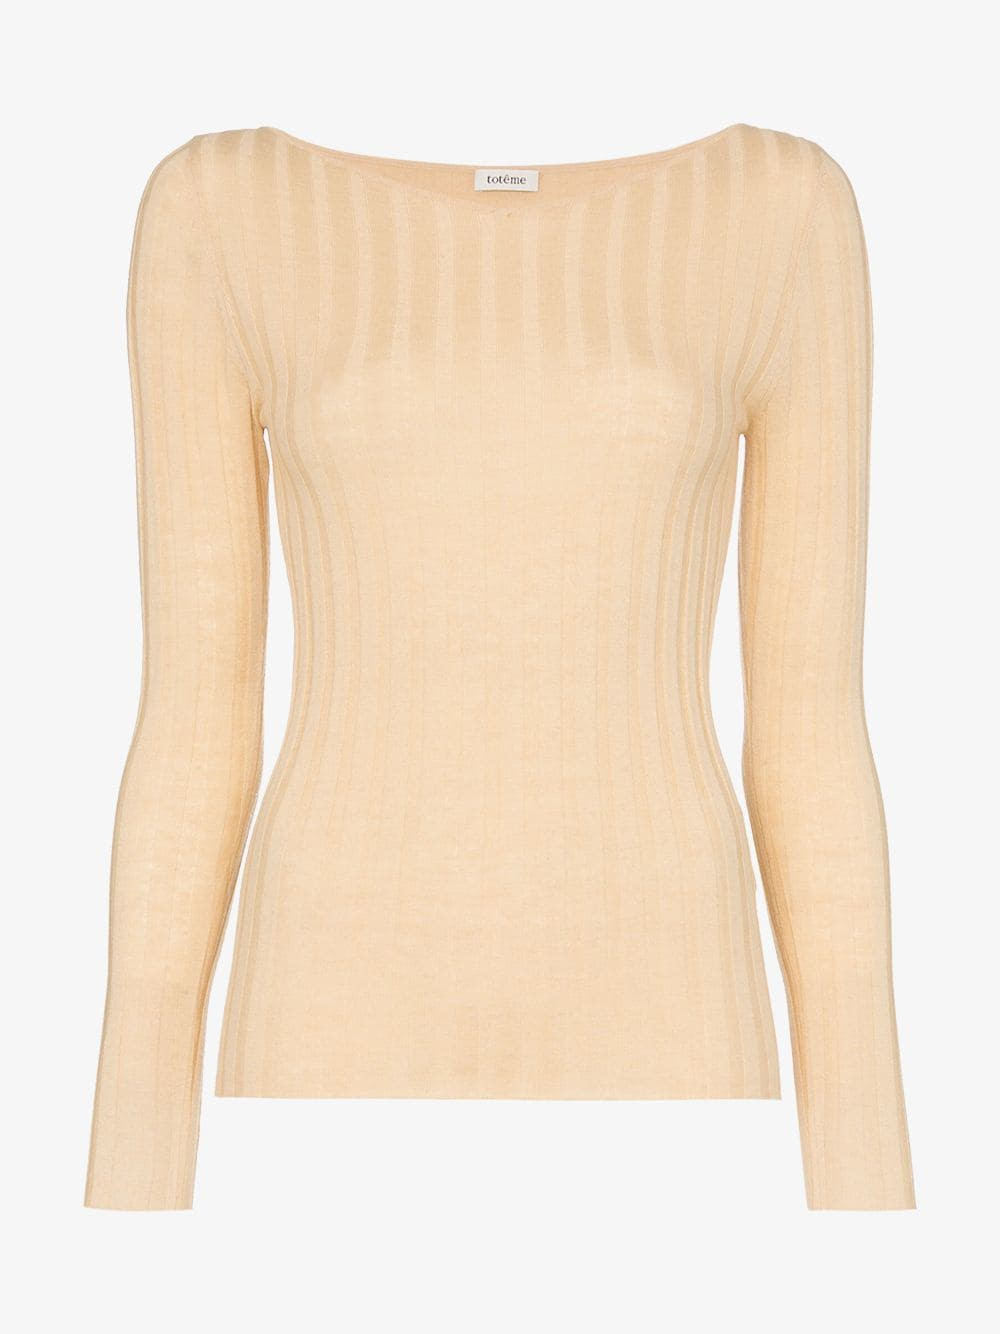 Toteme Toury ribbed wool and cashmere top in neutrals